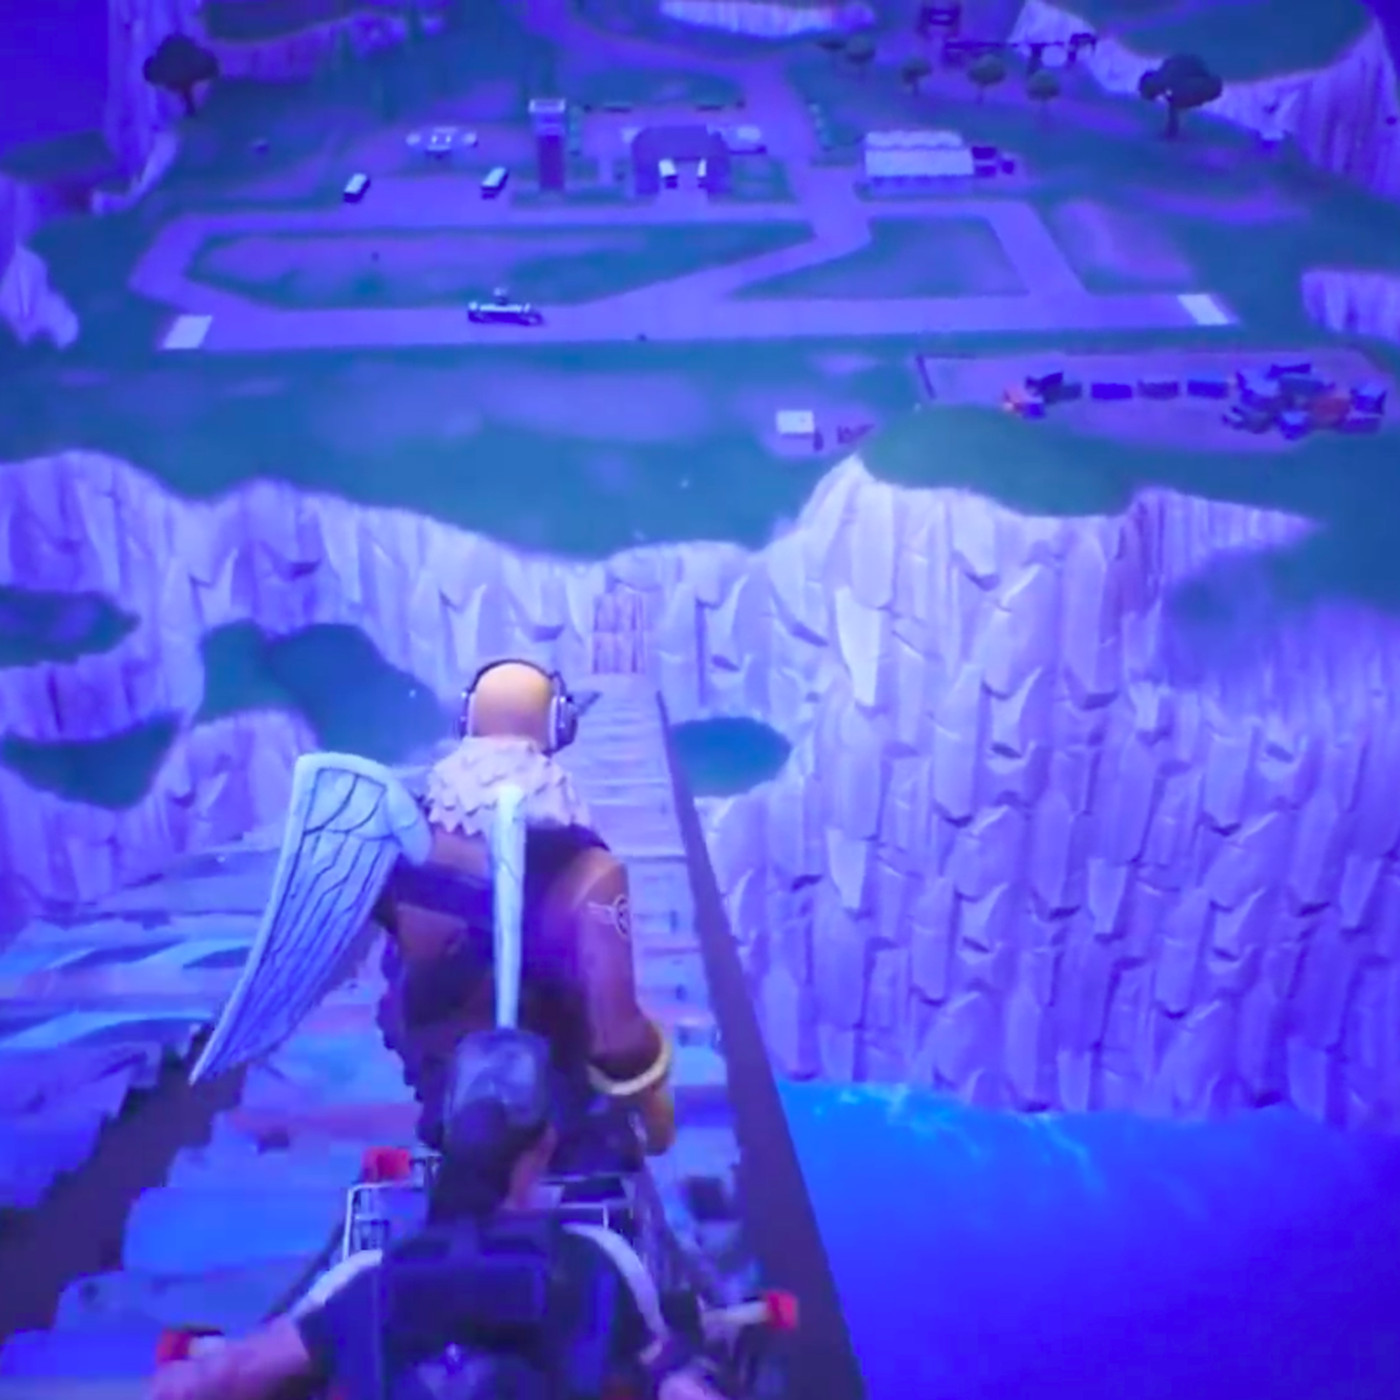 fortnite player uses shopping cart to reach mythical spawn island - fortnite see yourself out quest